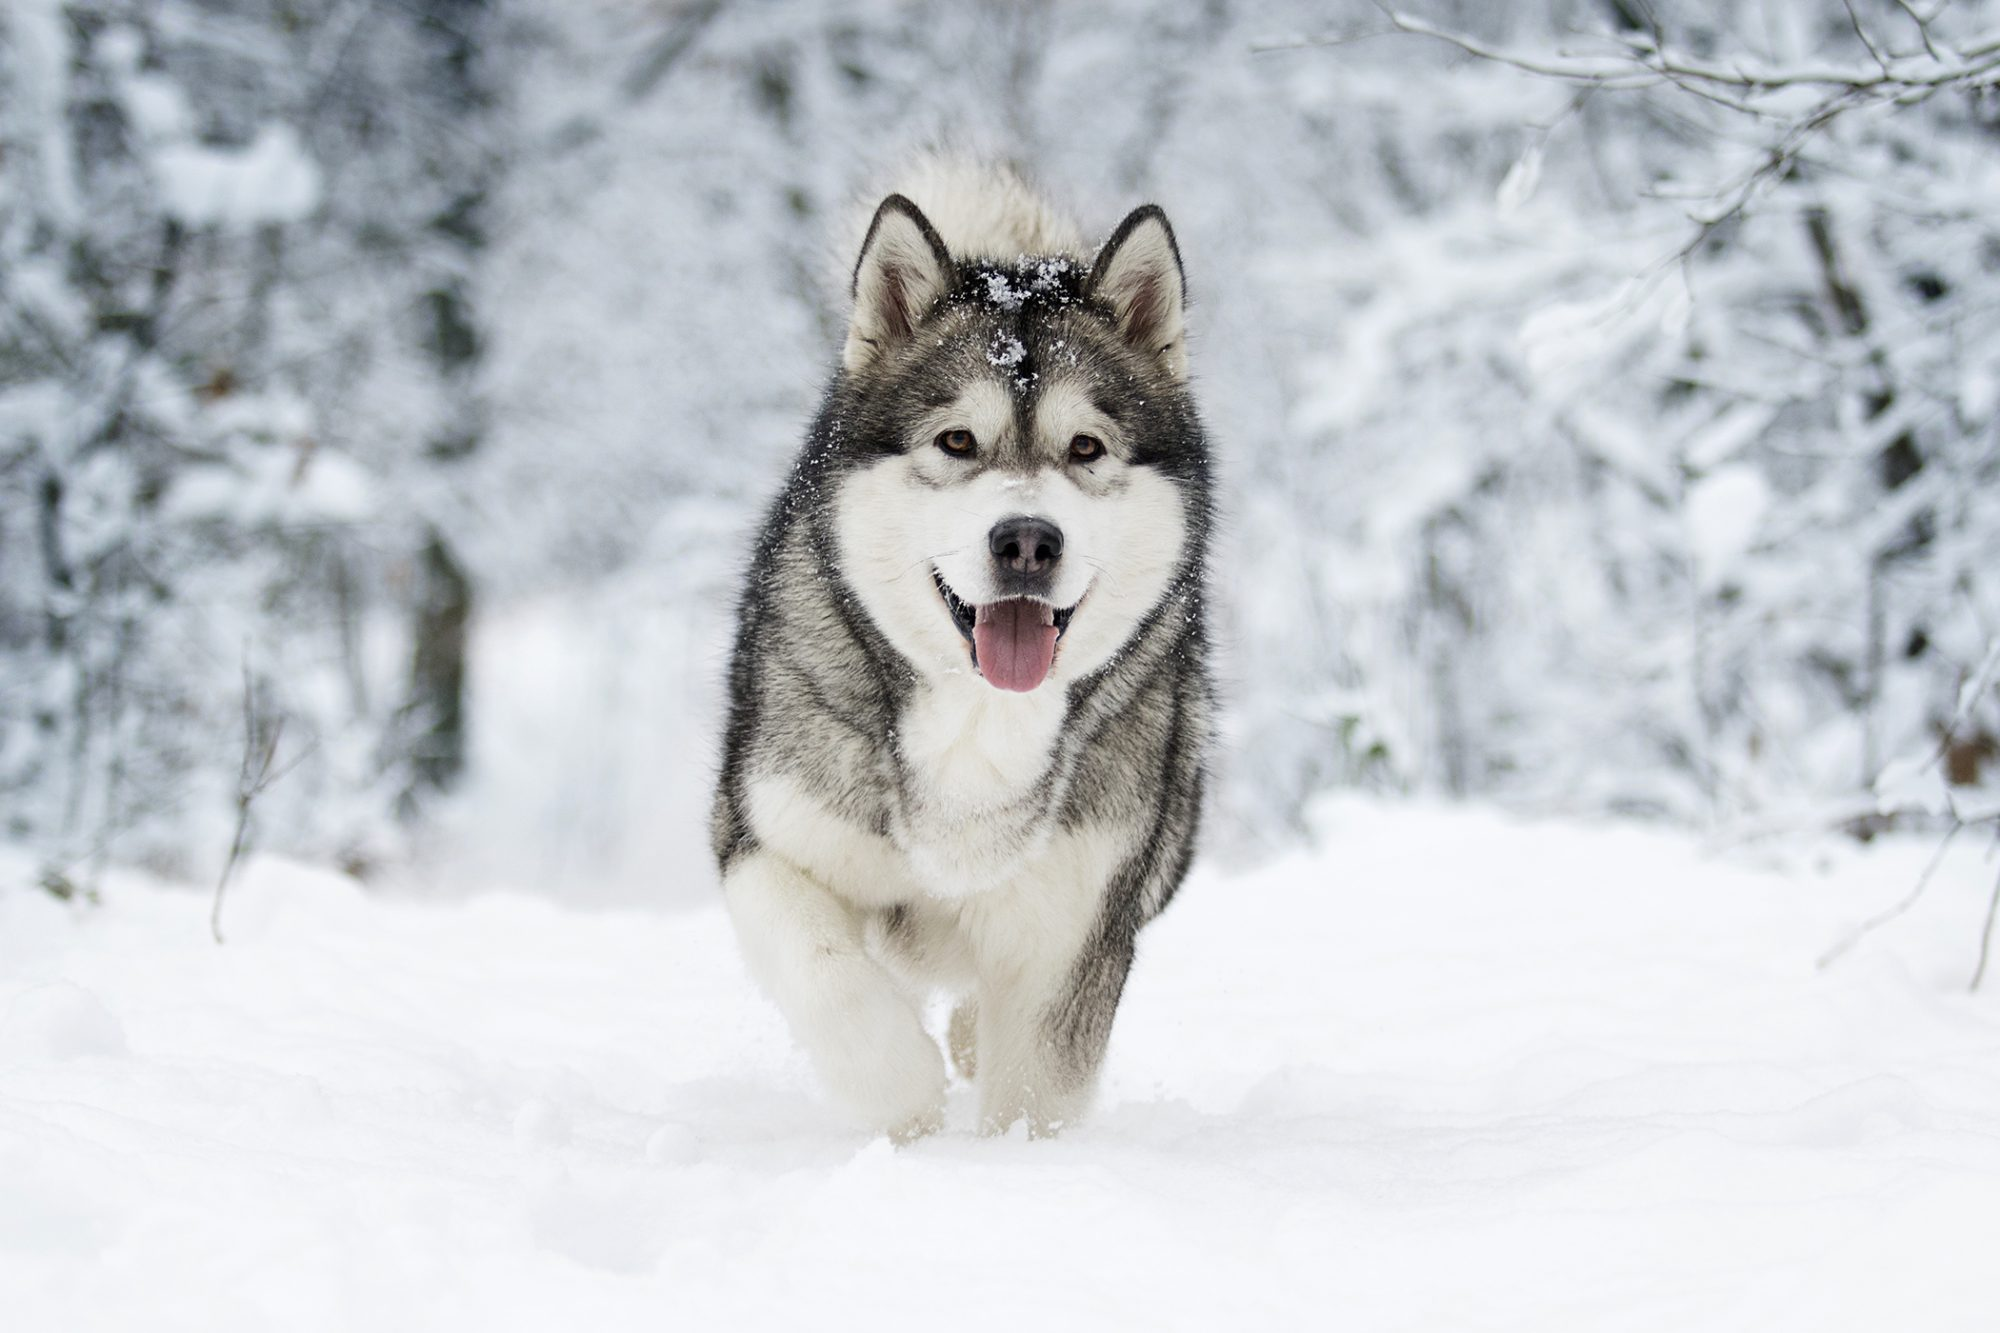 Alaskan malamute walks through snow